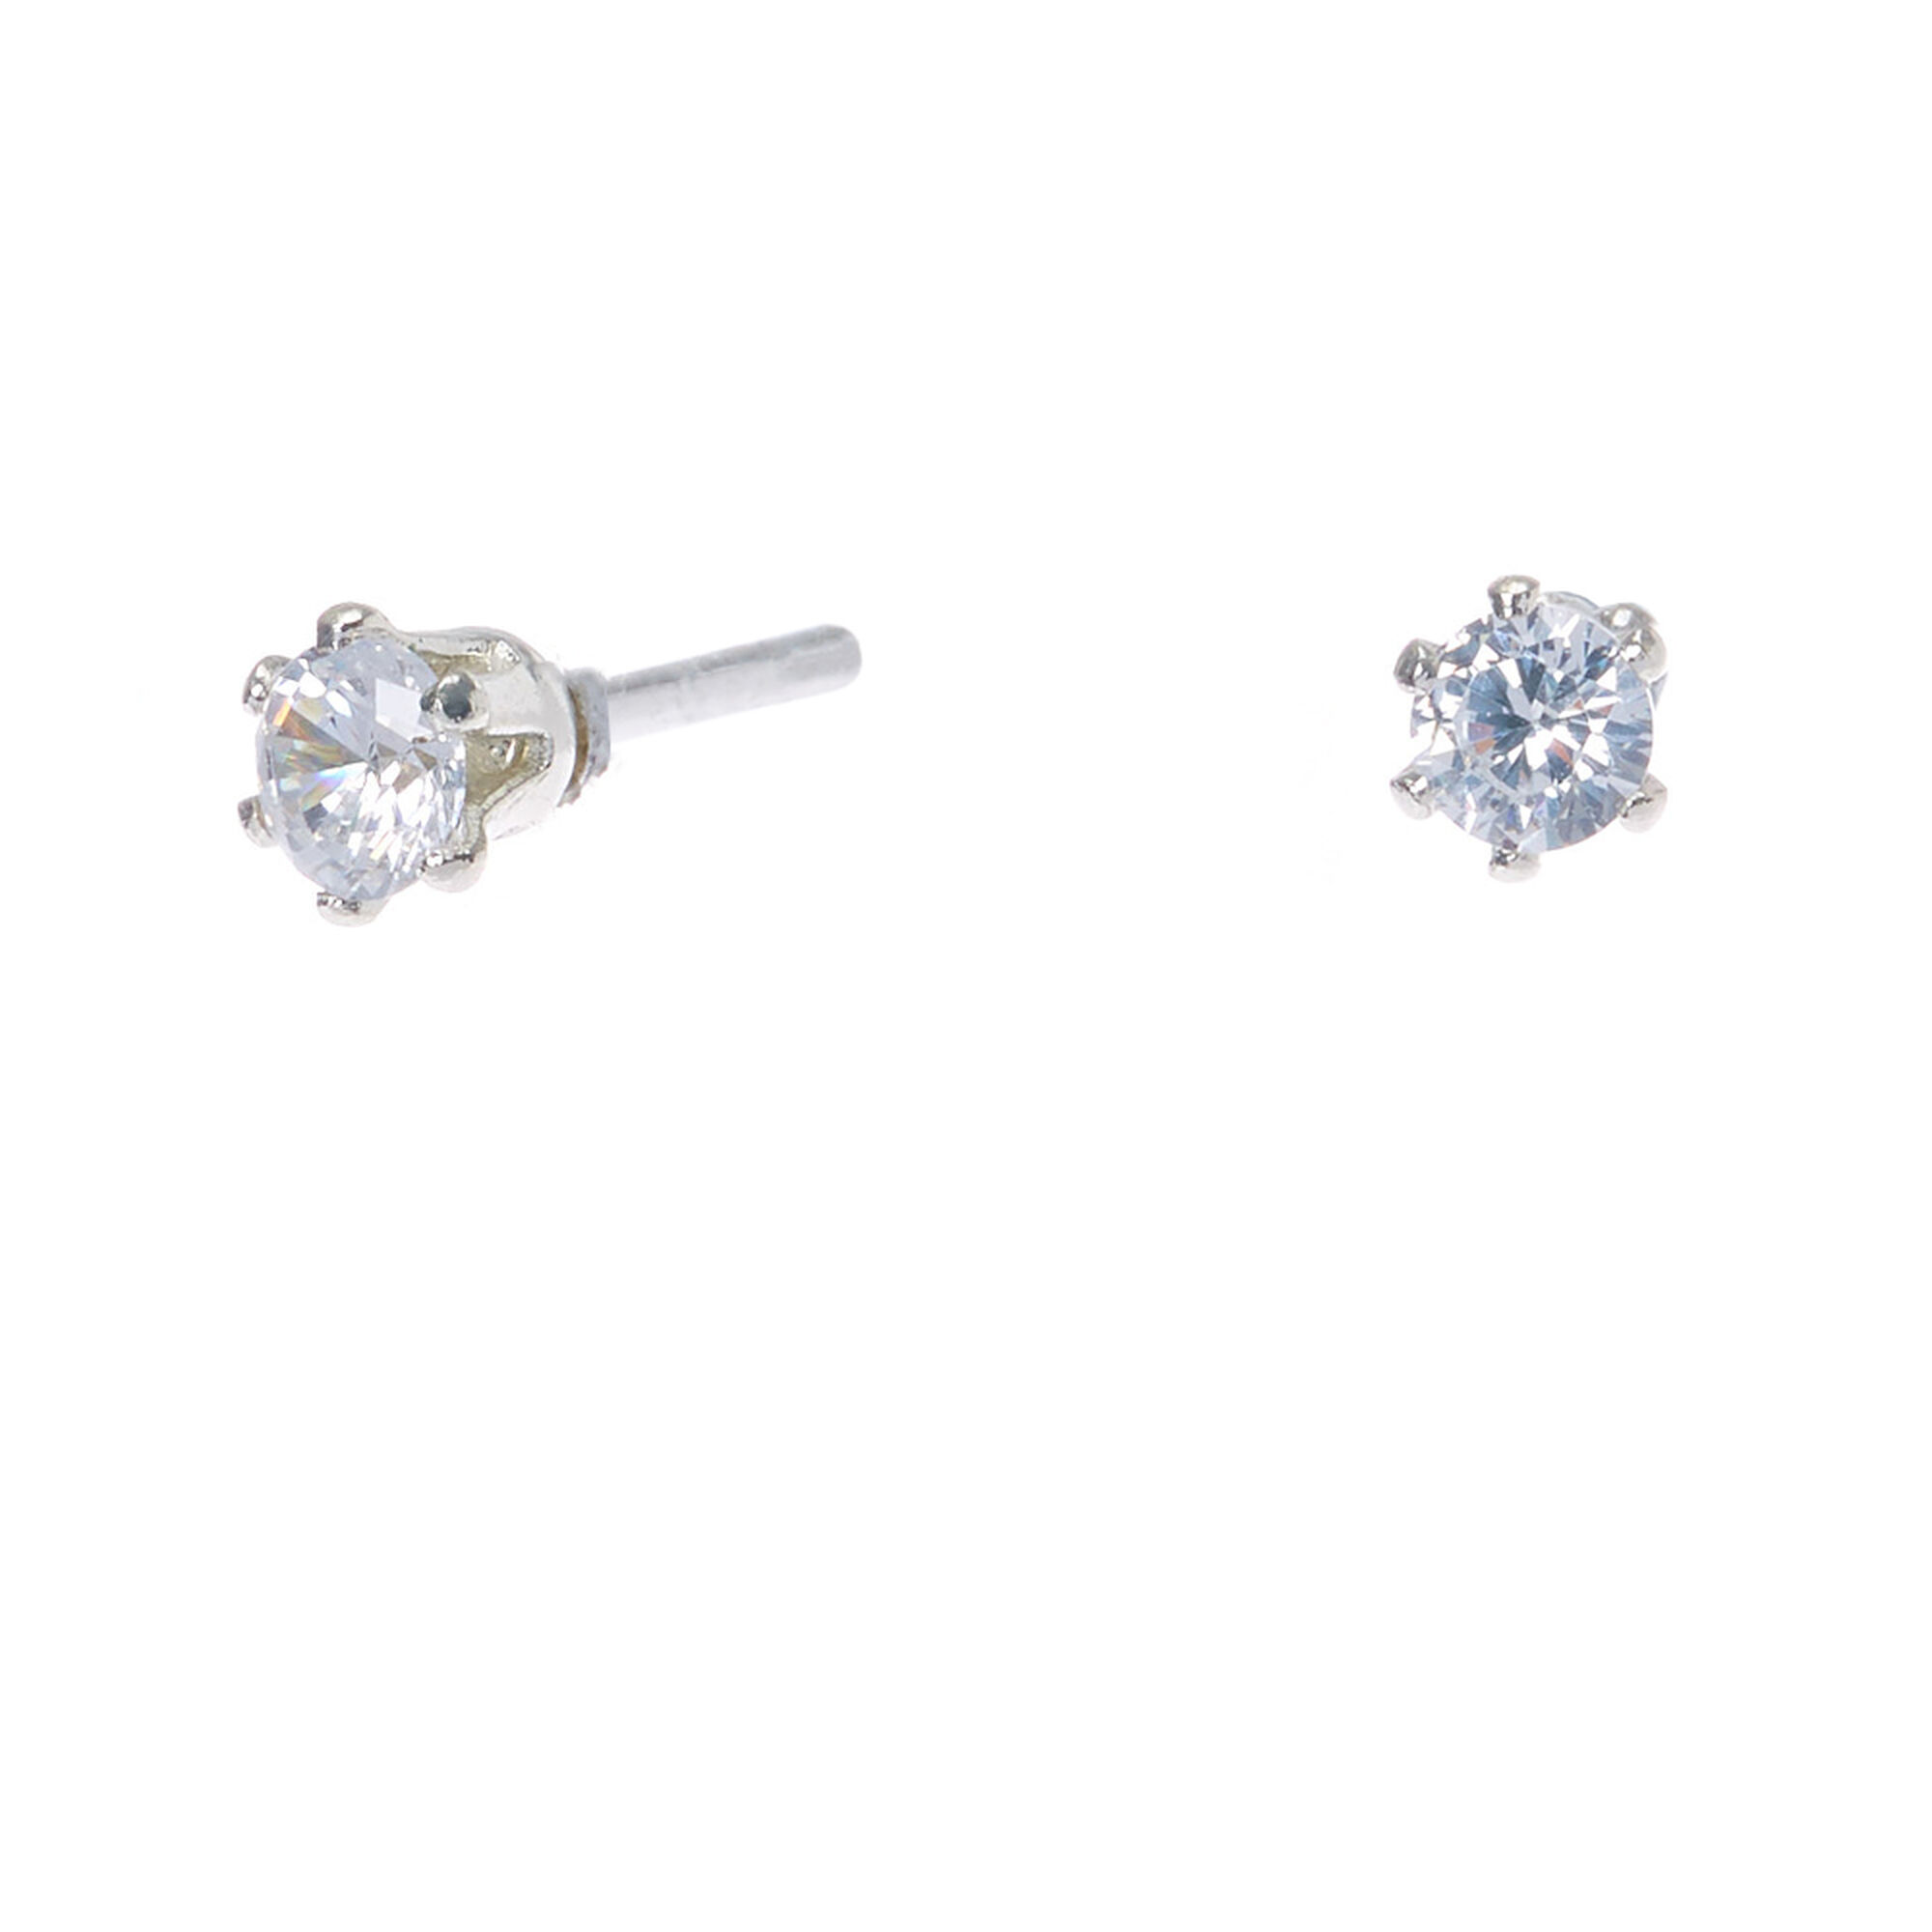 Silver Cubic Zirconia Round Stud Earrings - 3MM